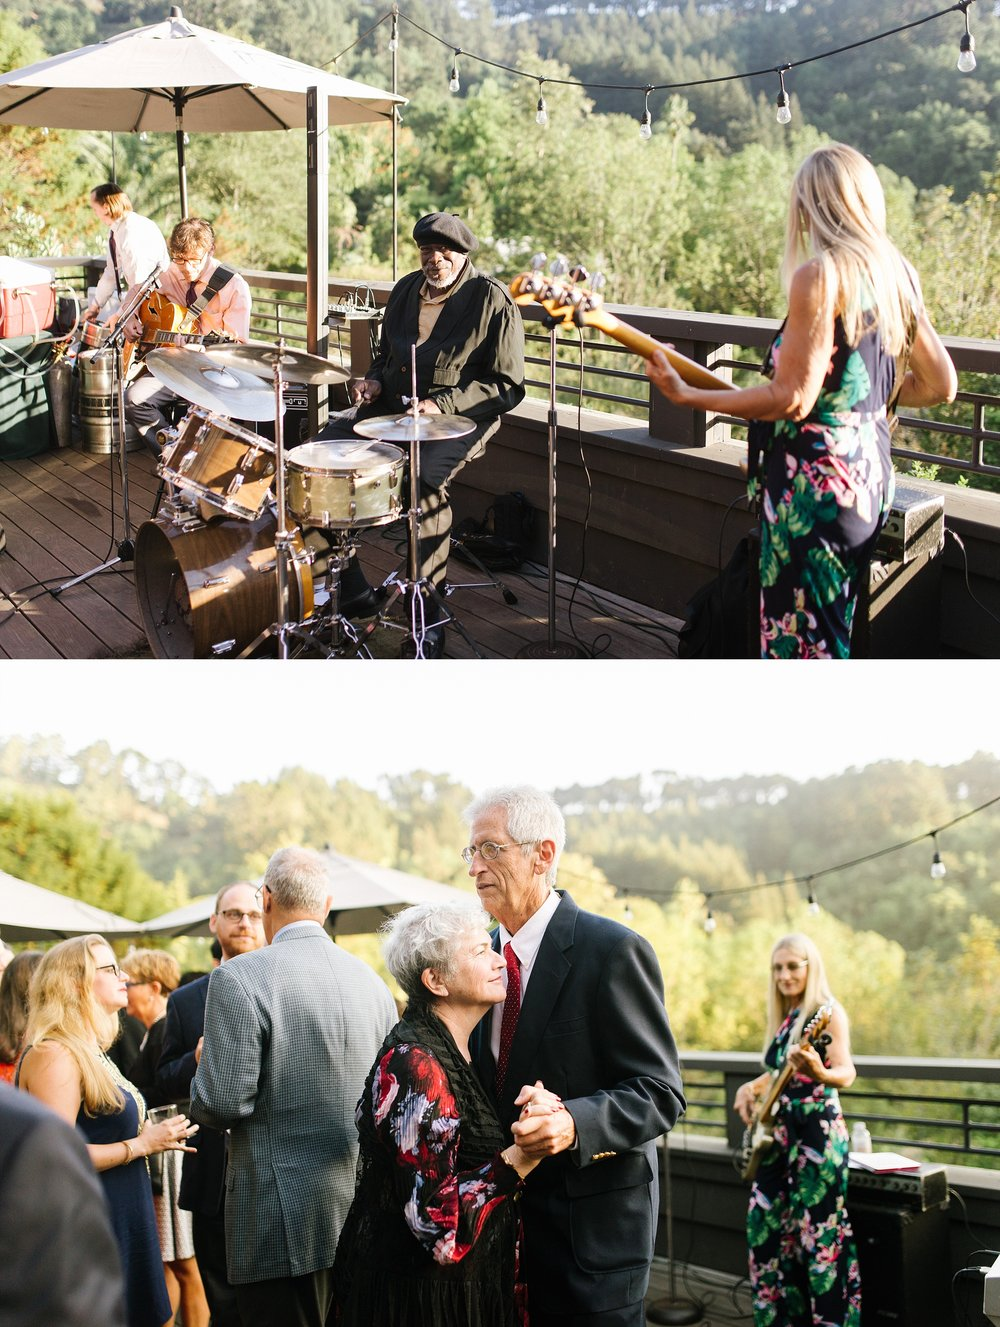 noahhannah_redwoods_botanical_wedding_berkeley_cdp_0051.jpg